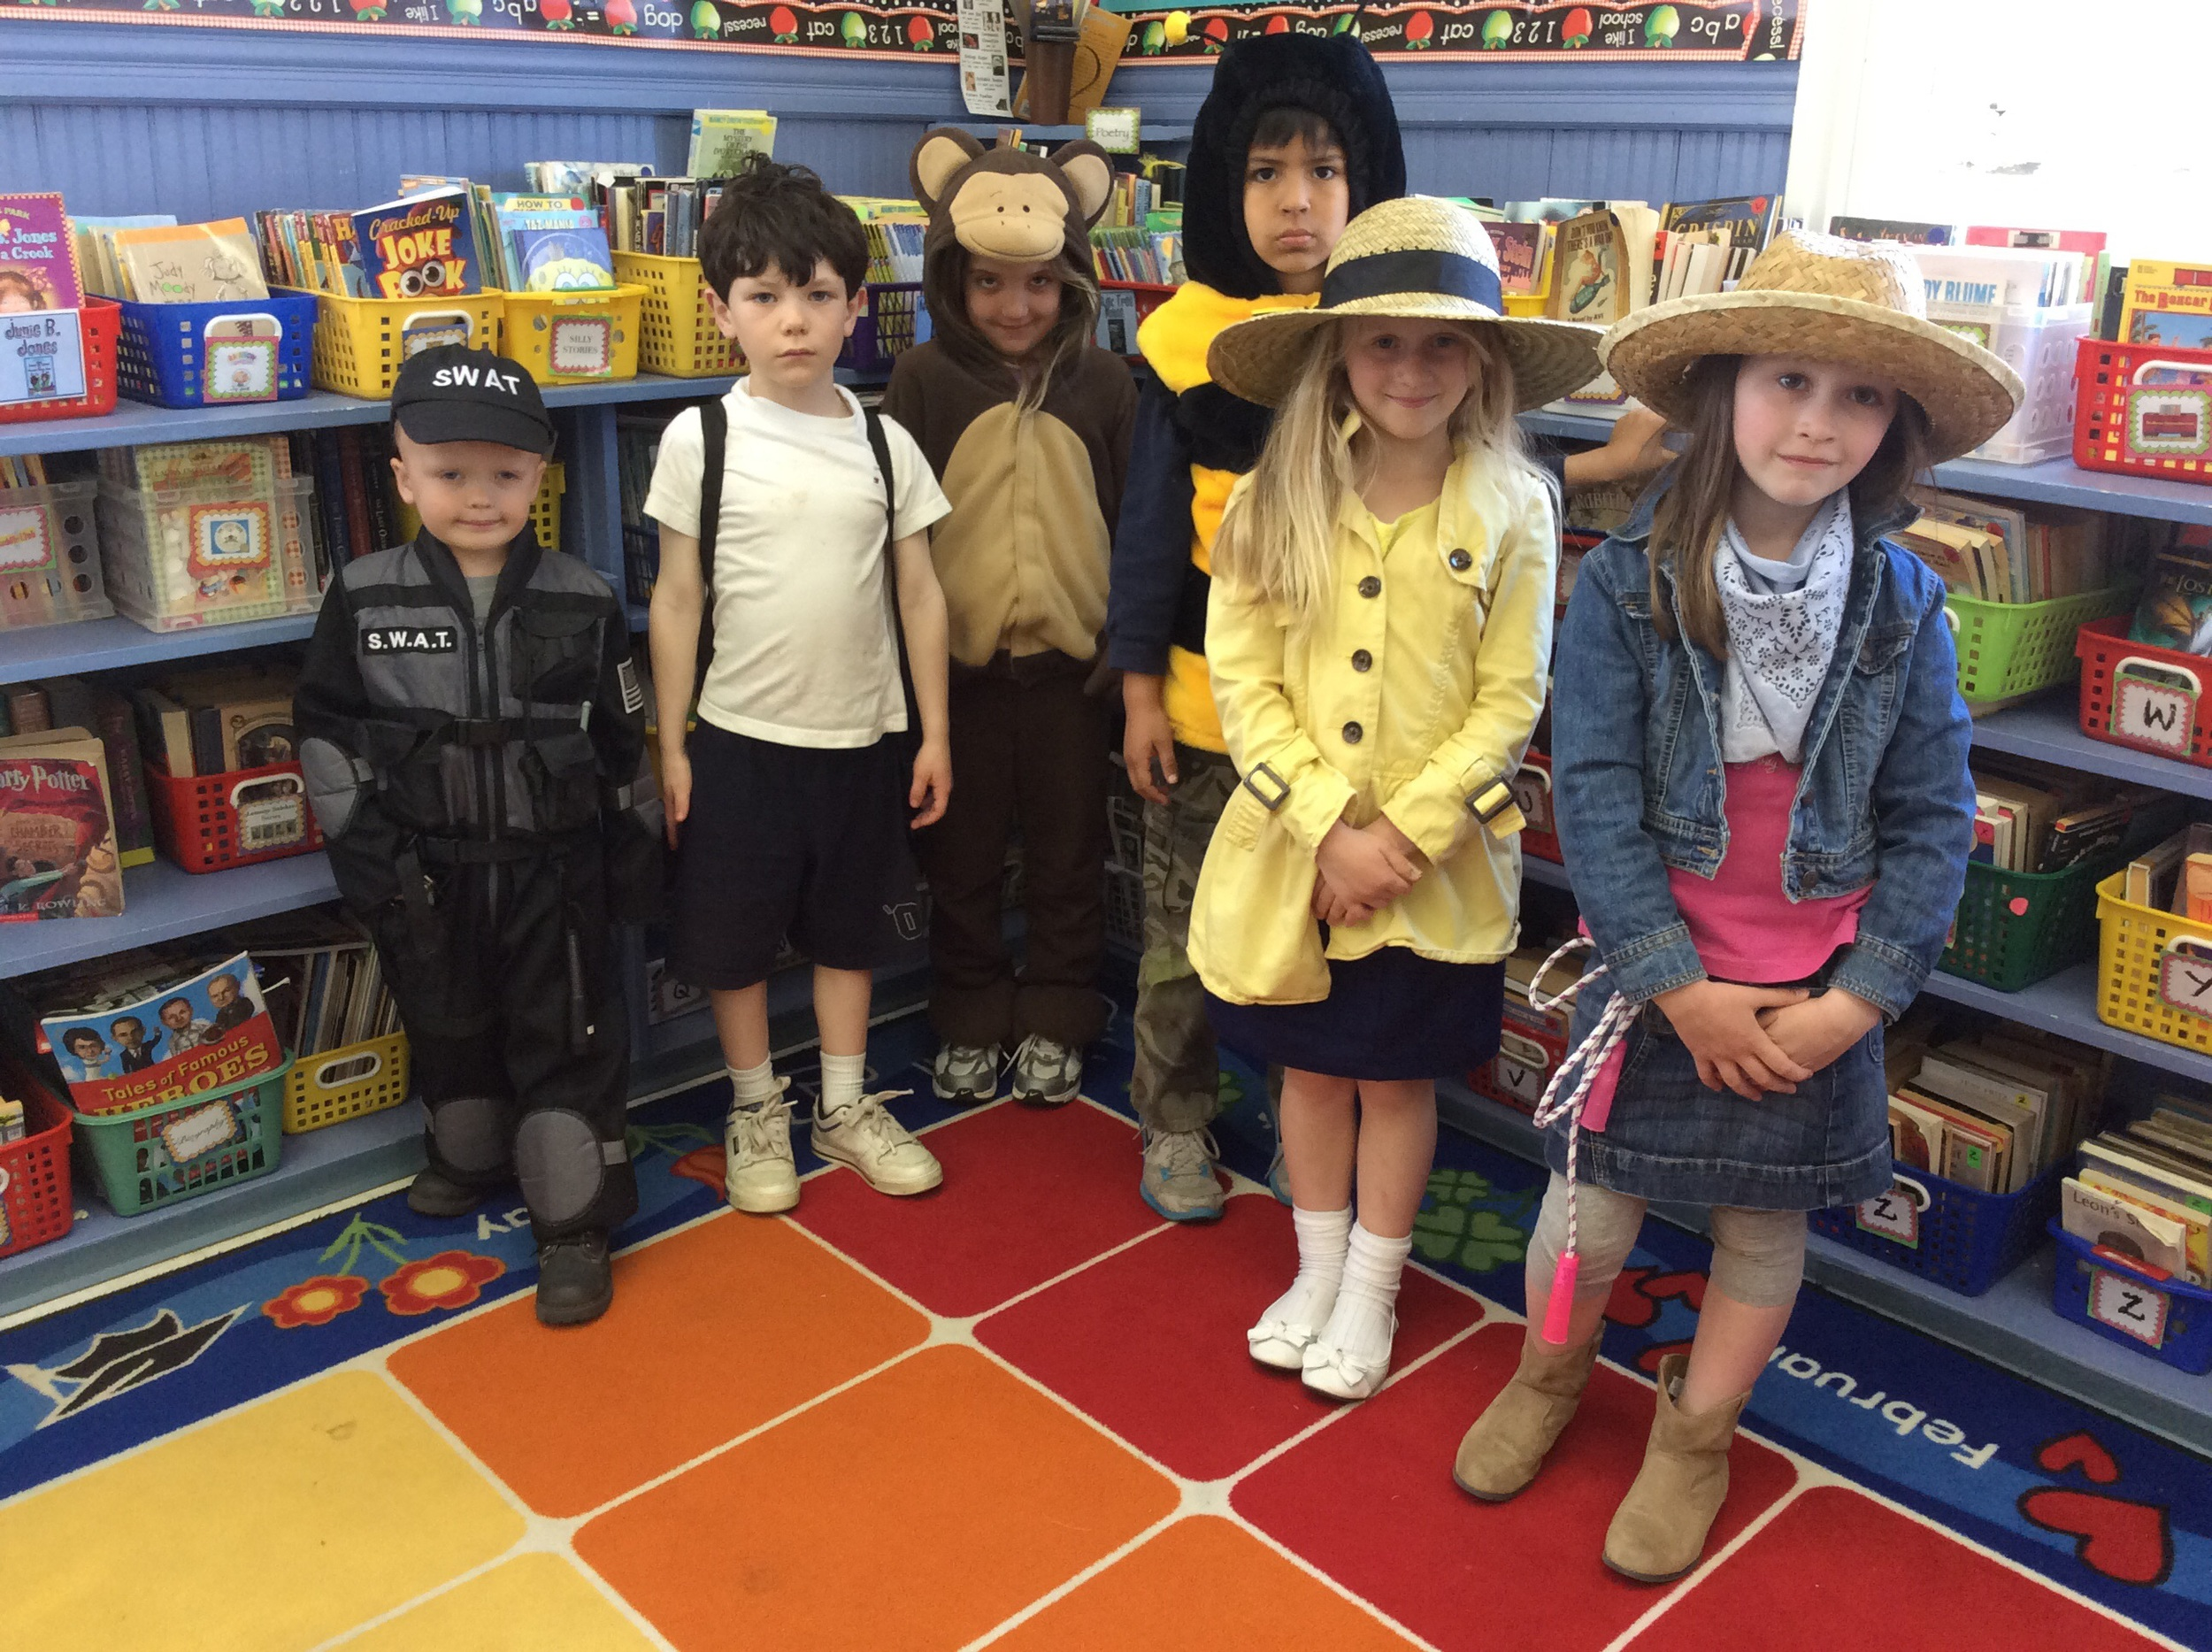 Left to right: Chance McCain from Lego City, Diary of a Wimpy Kid's Greg, Curious George, Fly Guy, Madeline, and Andrea from Big Apple Barn